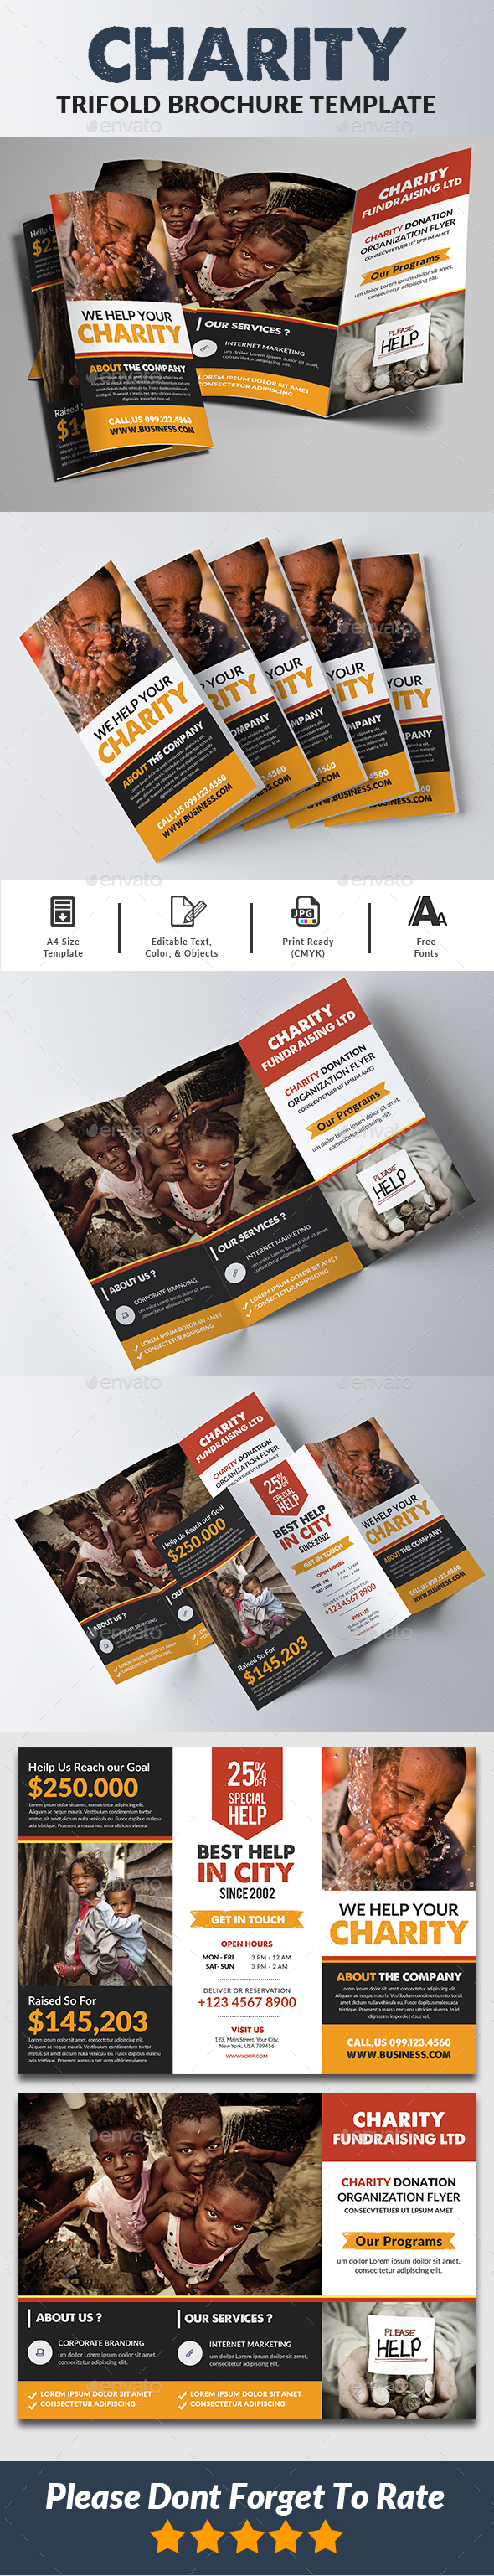 Charity Trifold Brochure - Corporate Brochures